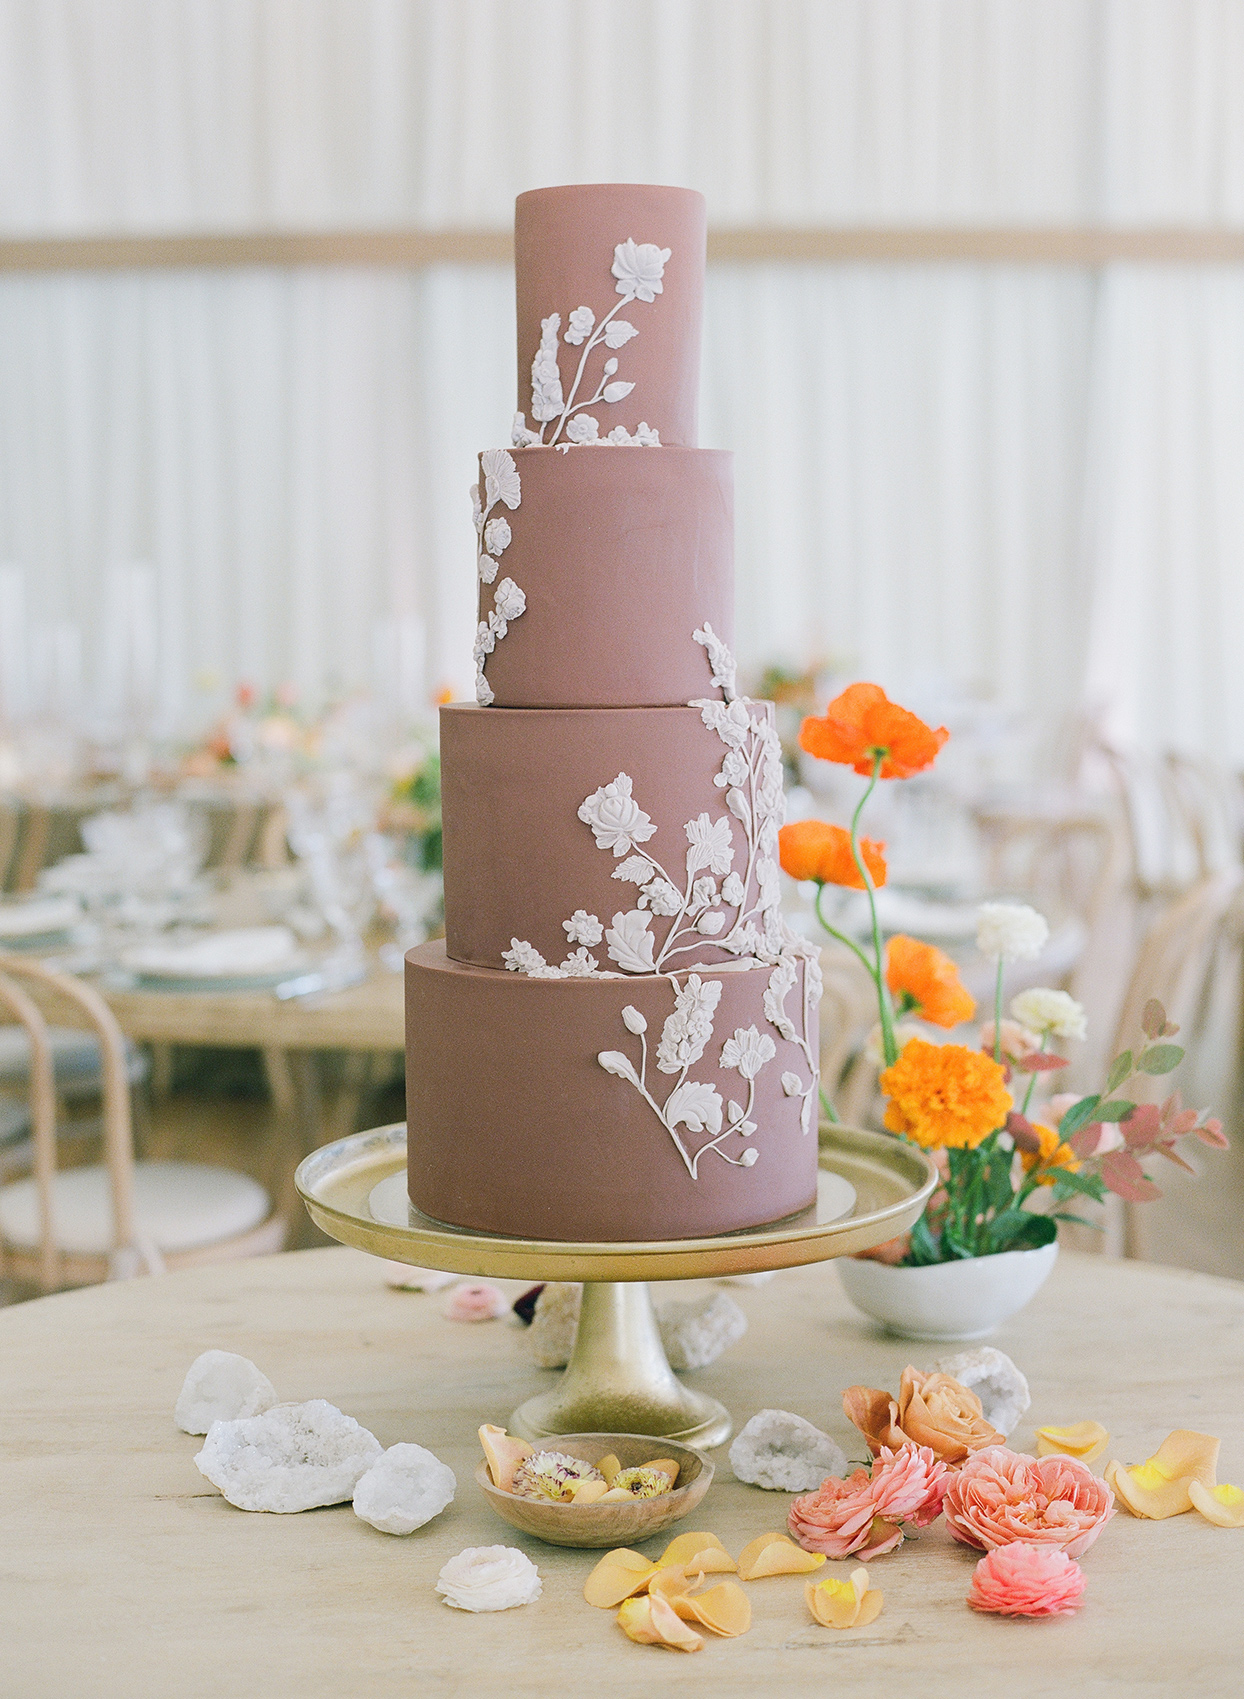 mauve fondant cake with white floral decor